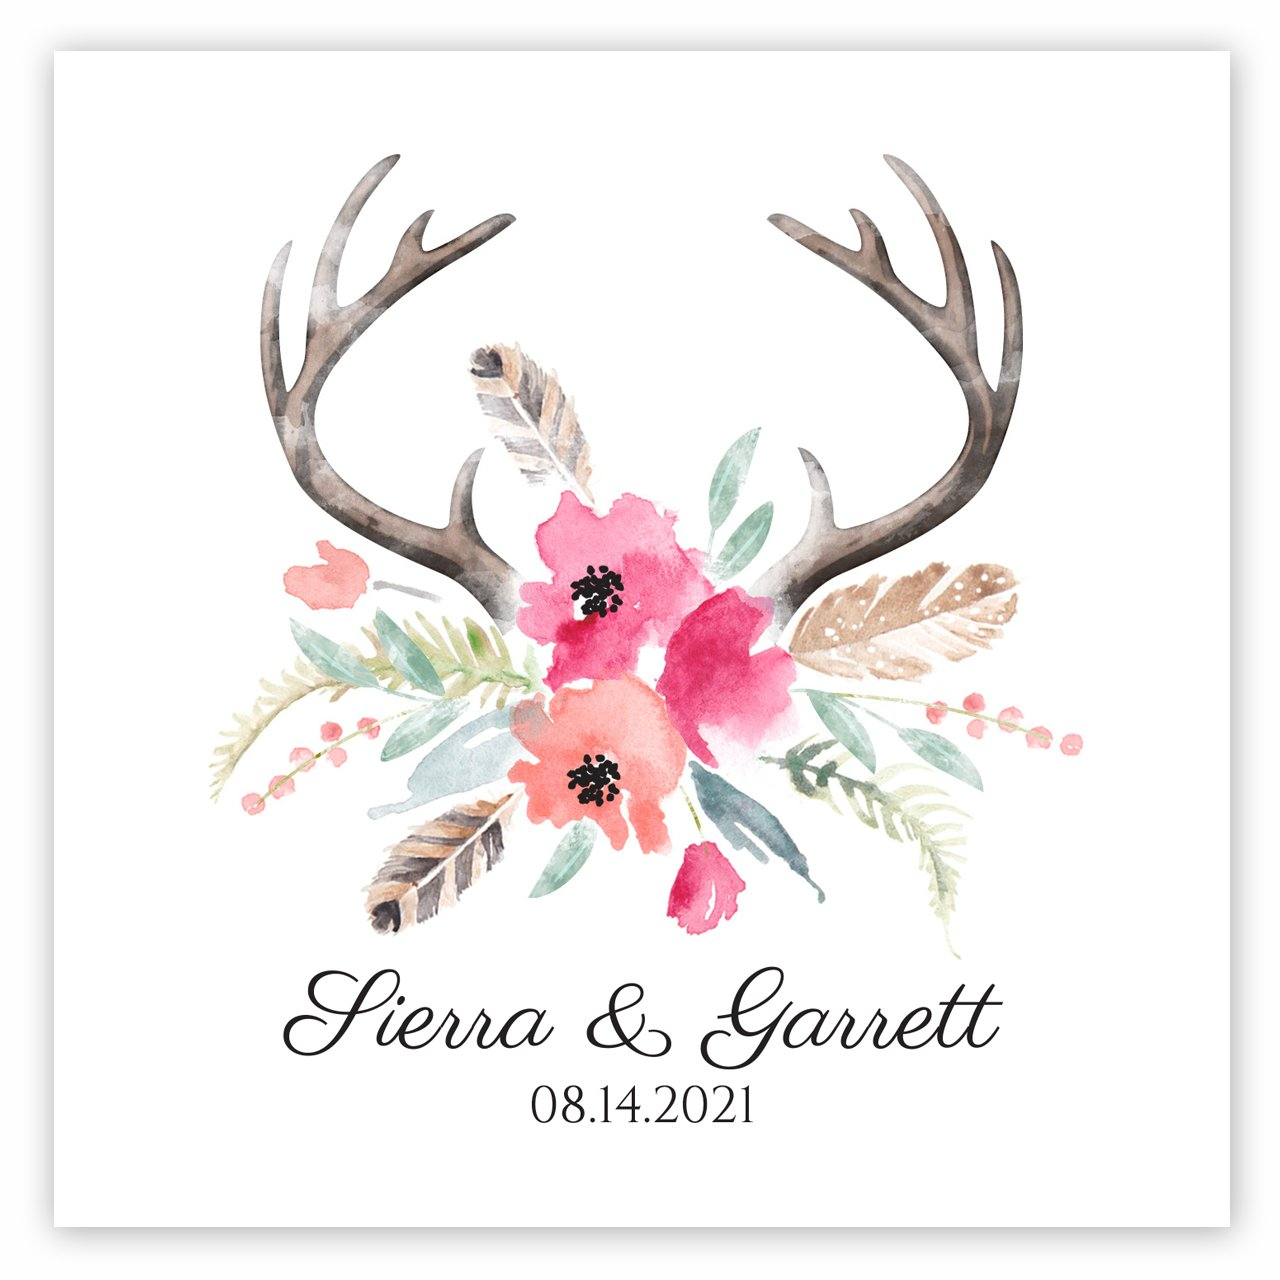 Blooming Antlers Personalized Beverage Cocktail Napkins - 100 Custom Printed Paper Napkins